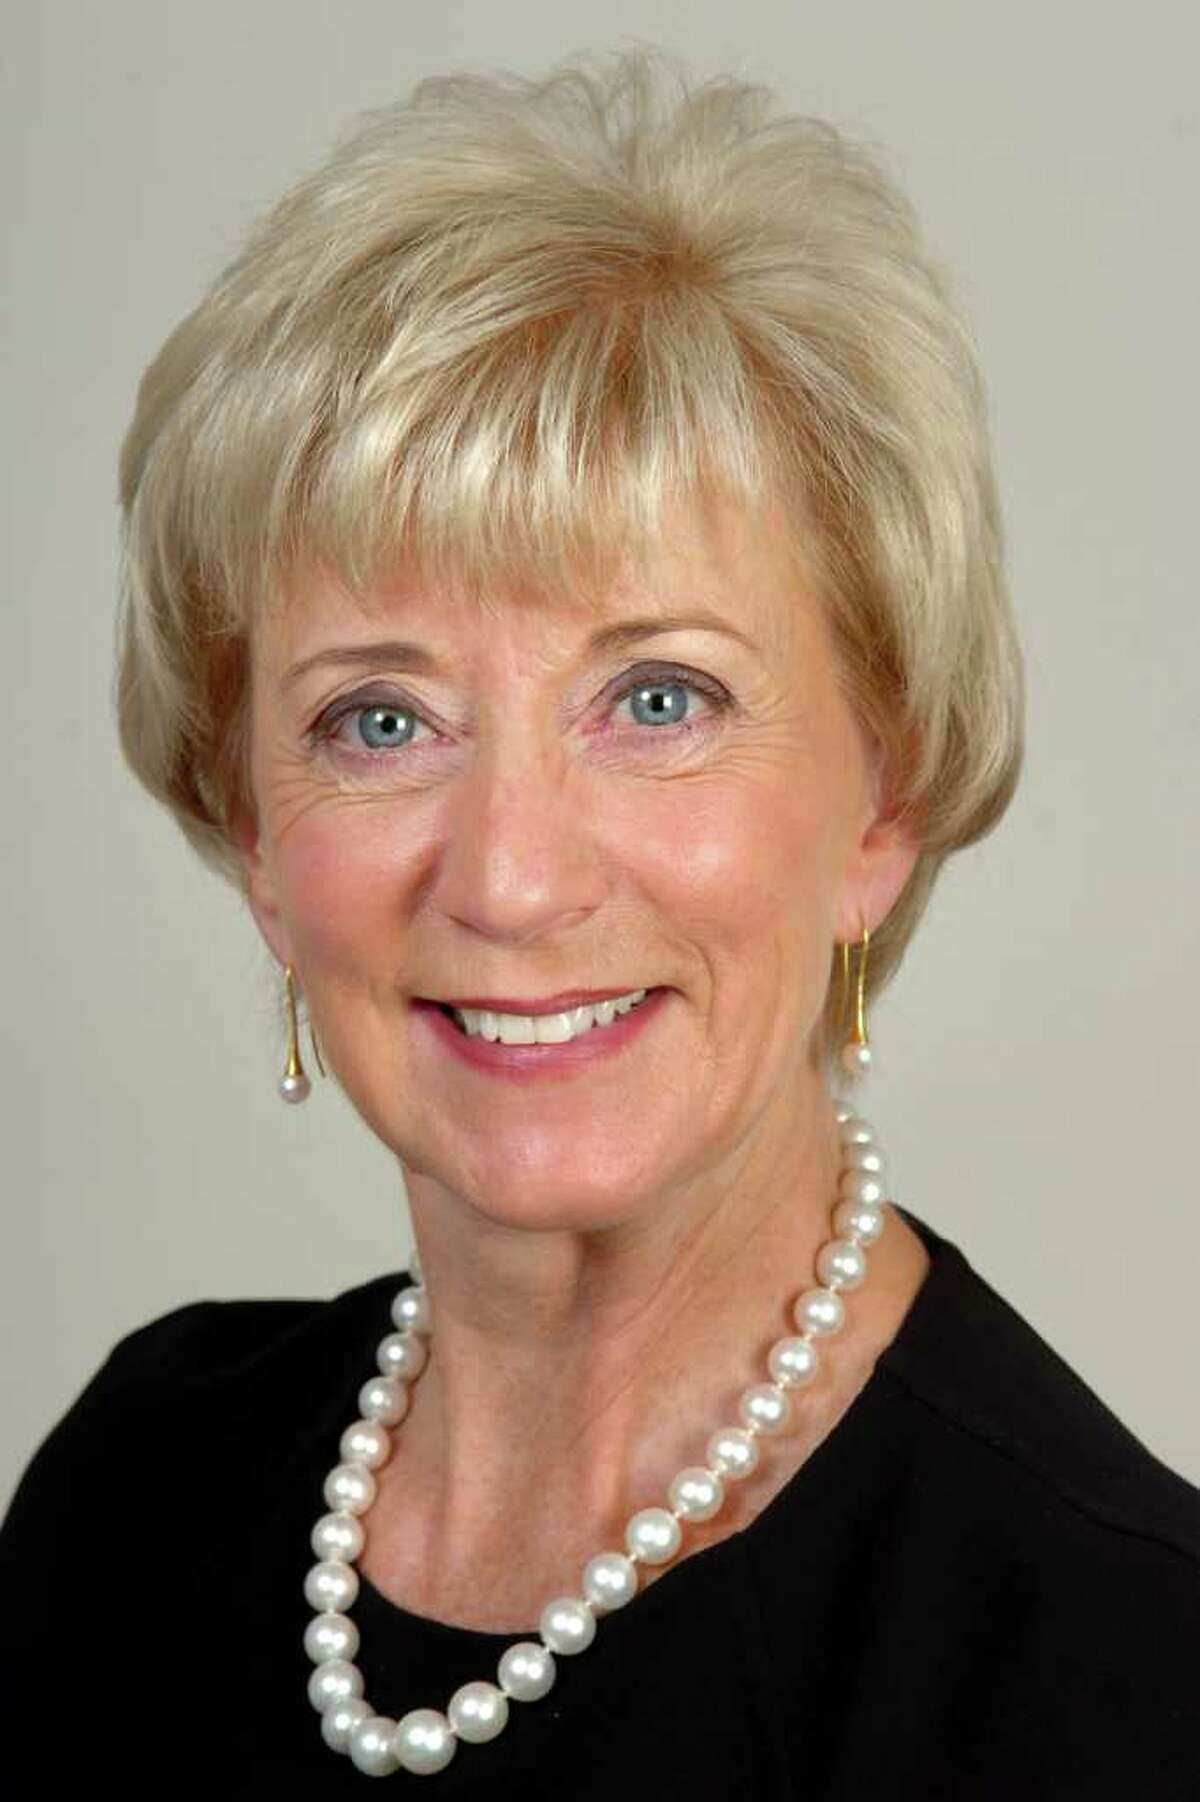 Linda McMahon, Republican candidate for U.S. Senate